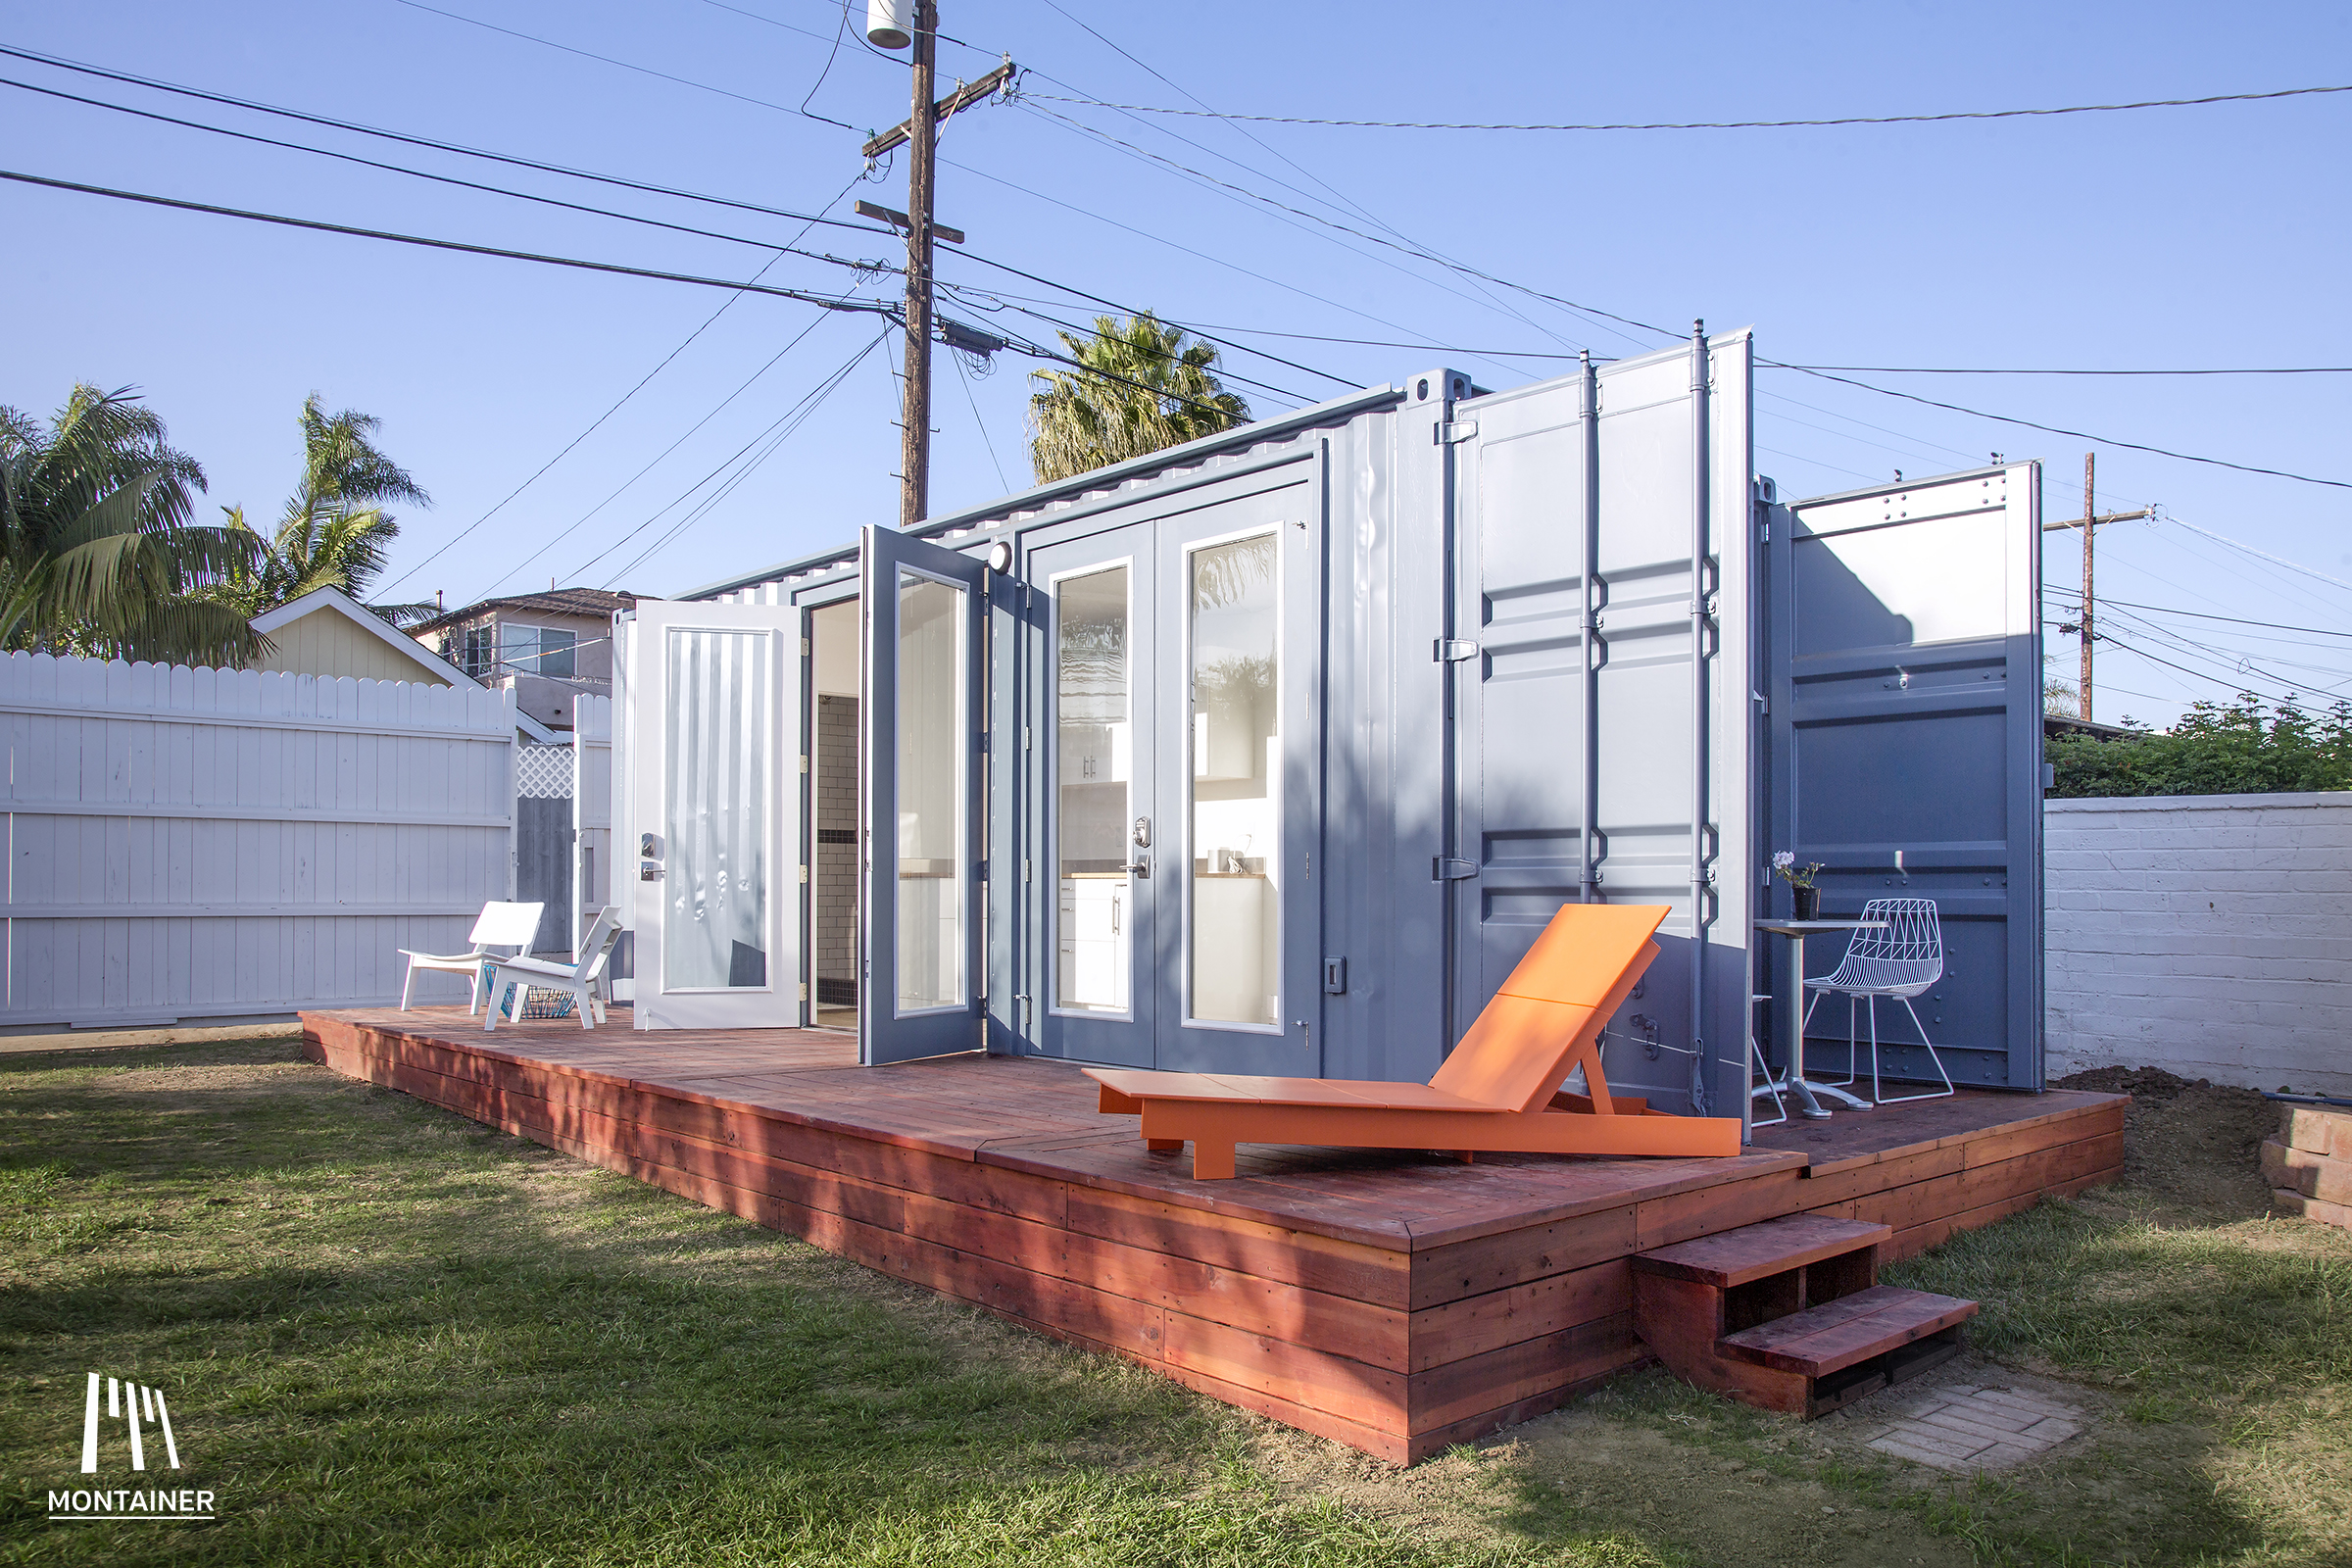 Montainer careers funding and management team angellist - Bithcin shipping container house ii ...